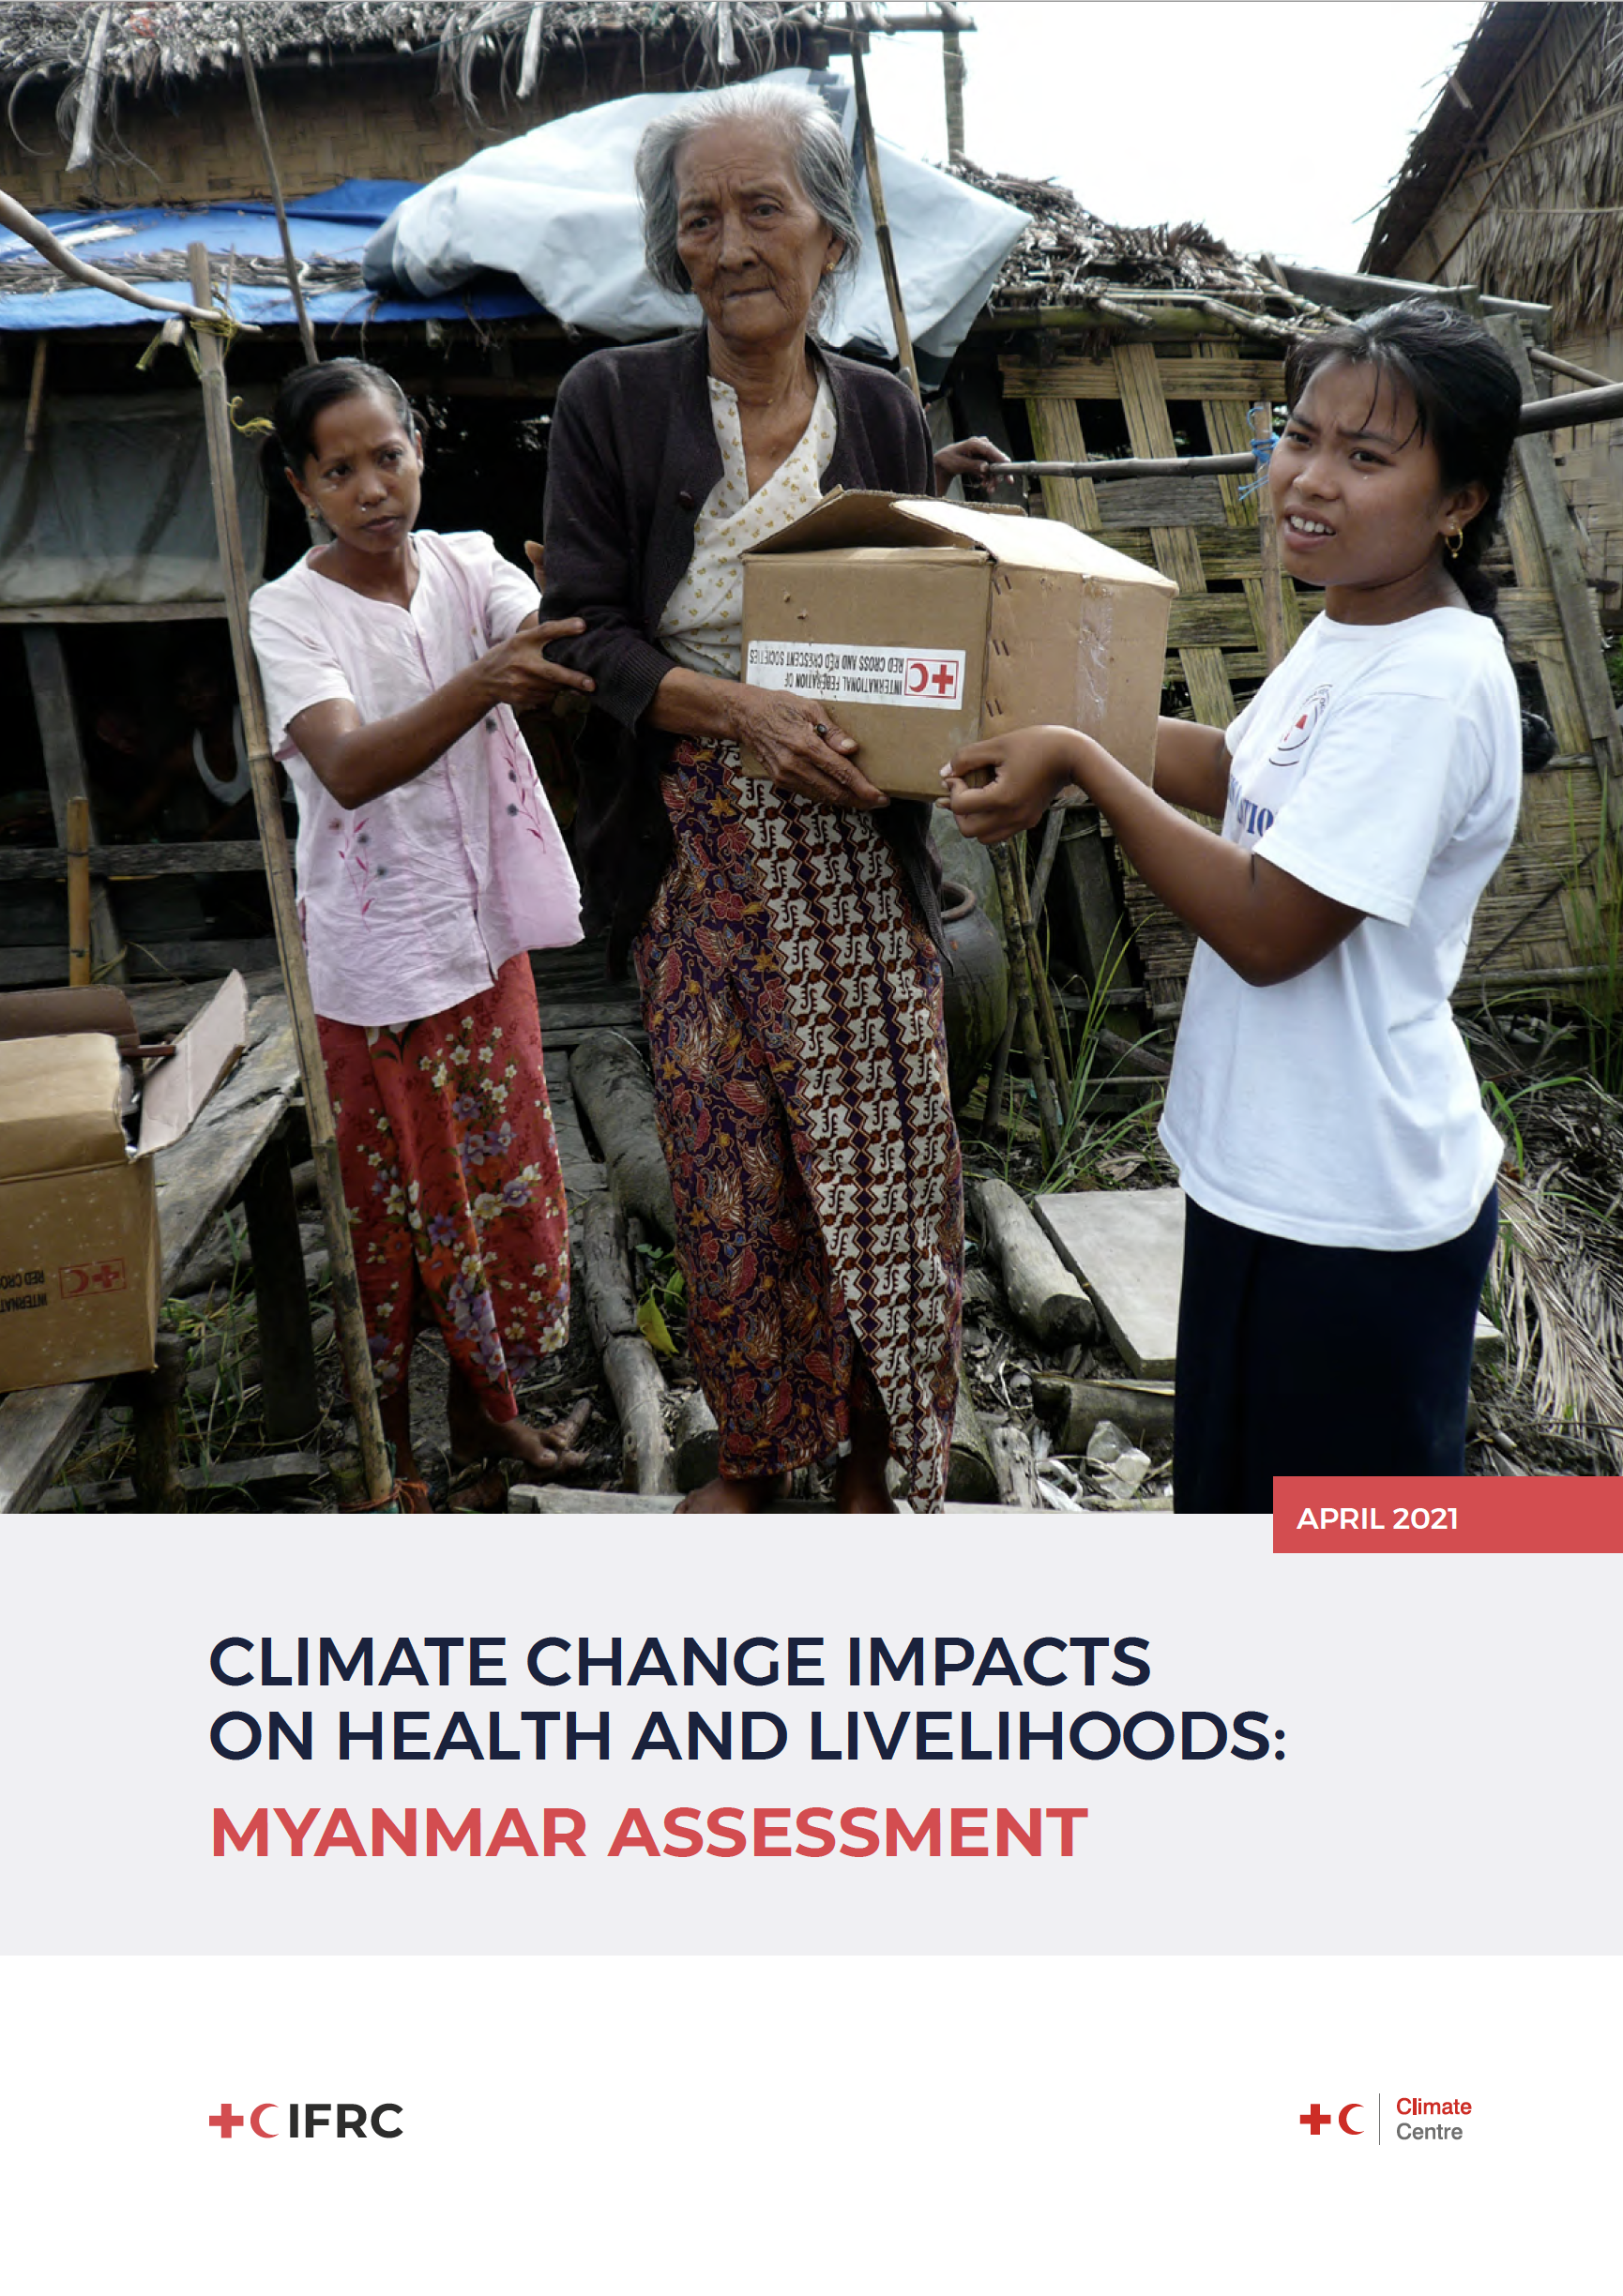 Climate Change Impacts on Health and Livelihoods: Myanmar Assessment